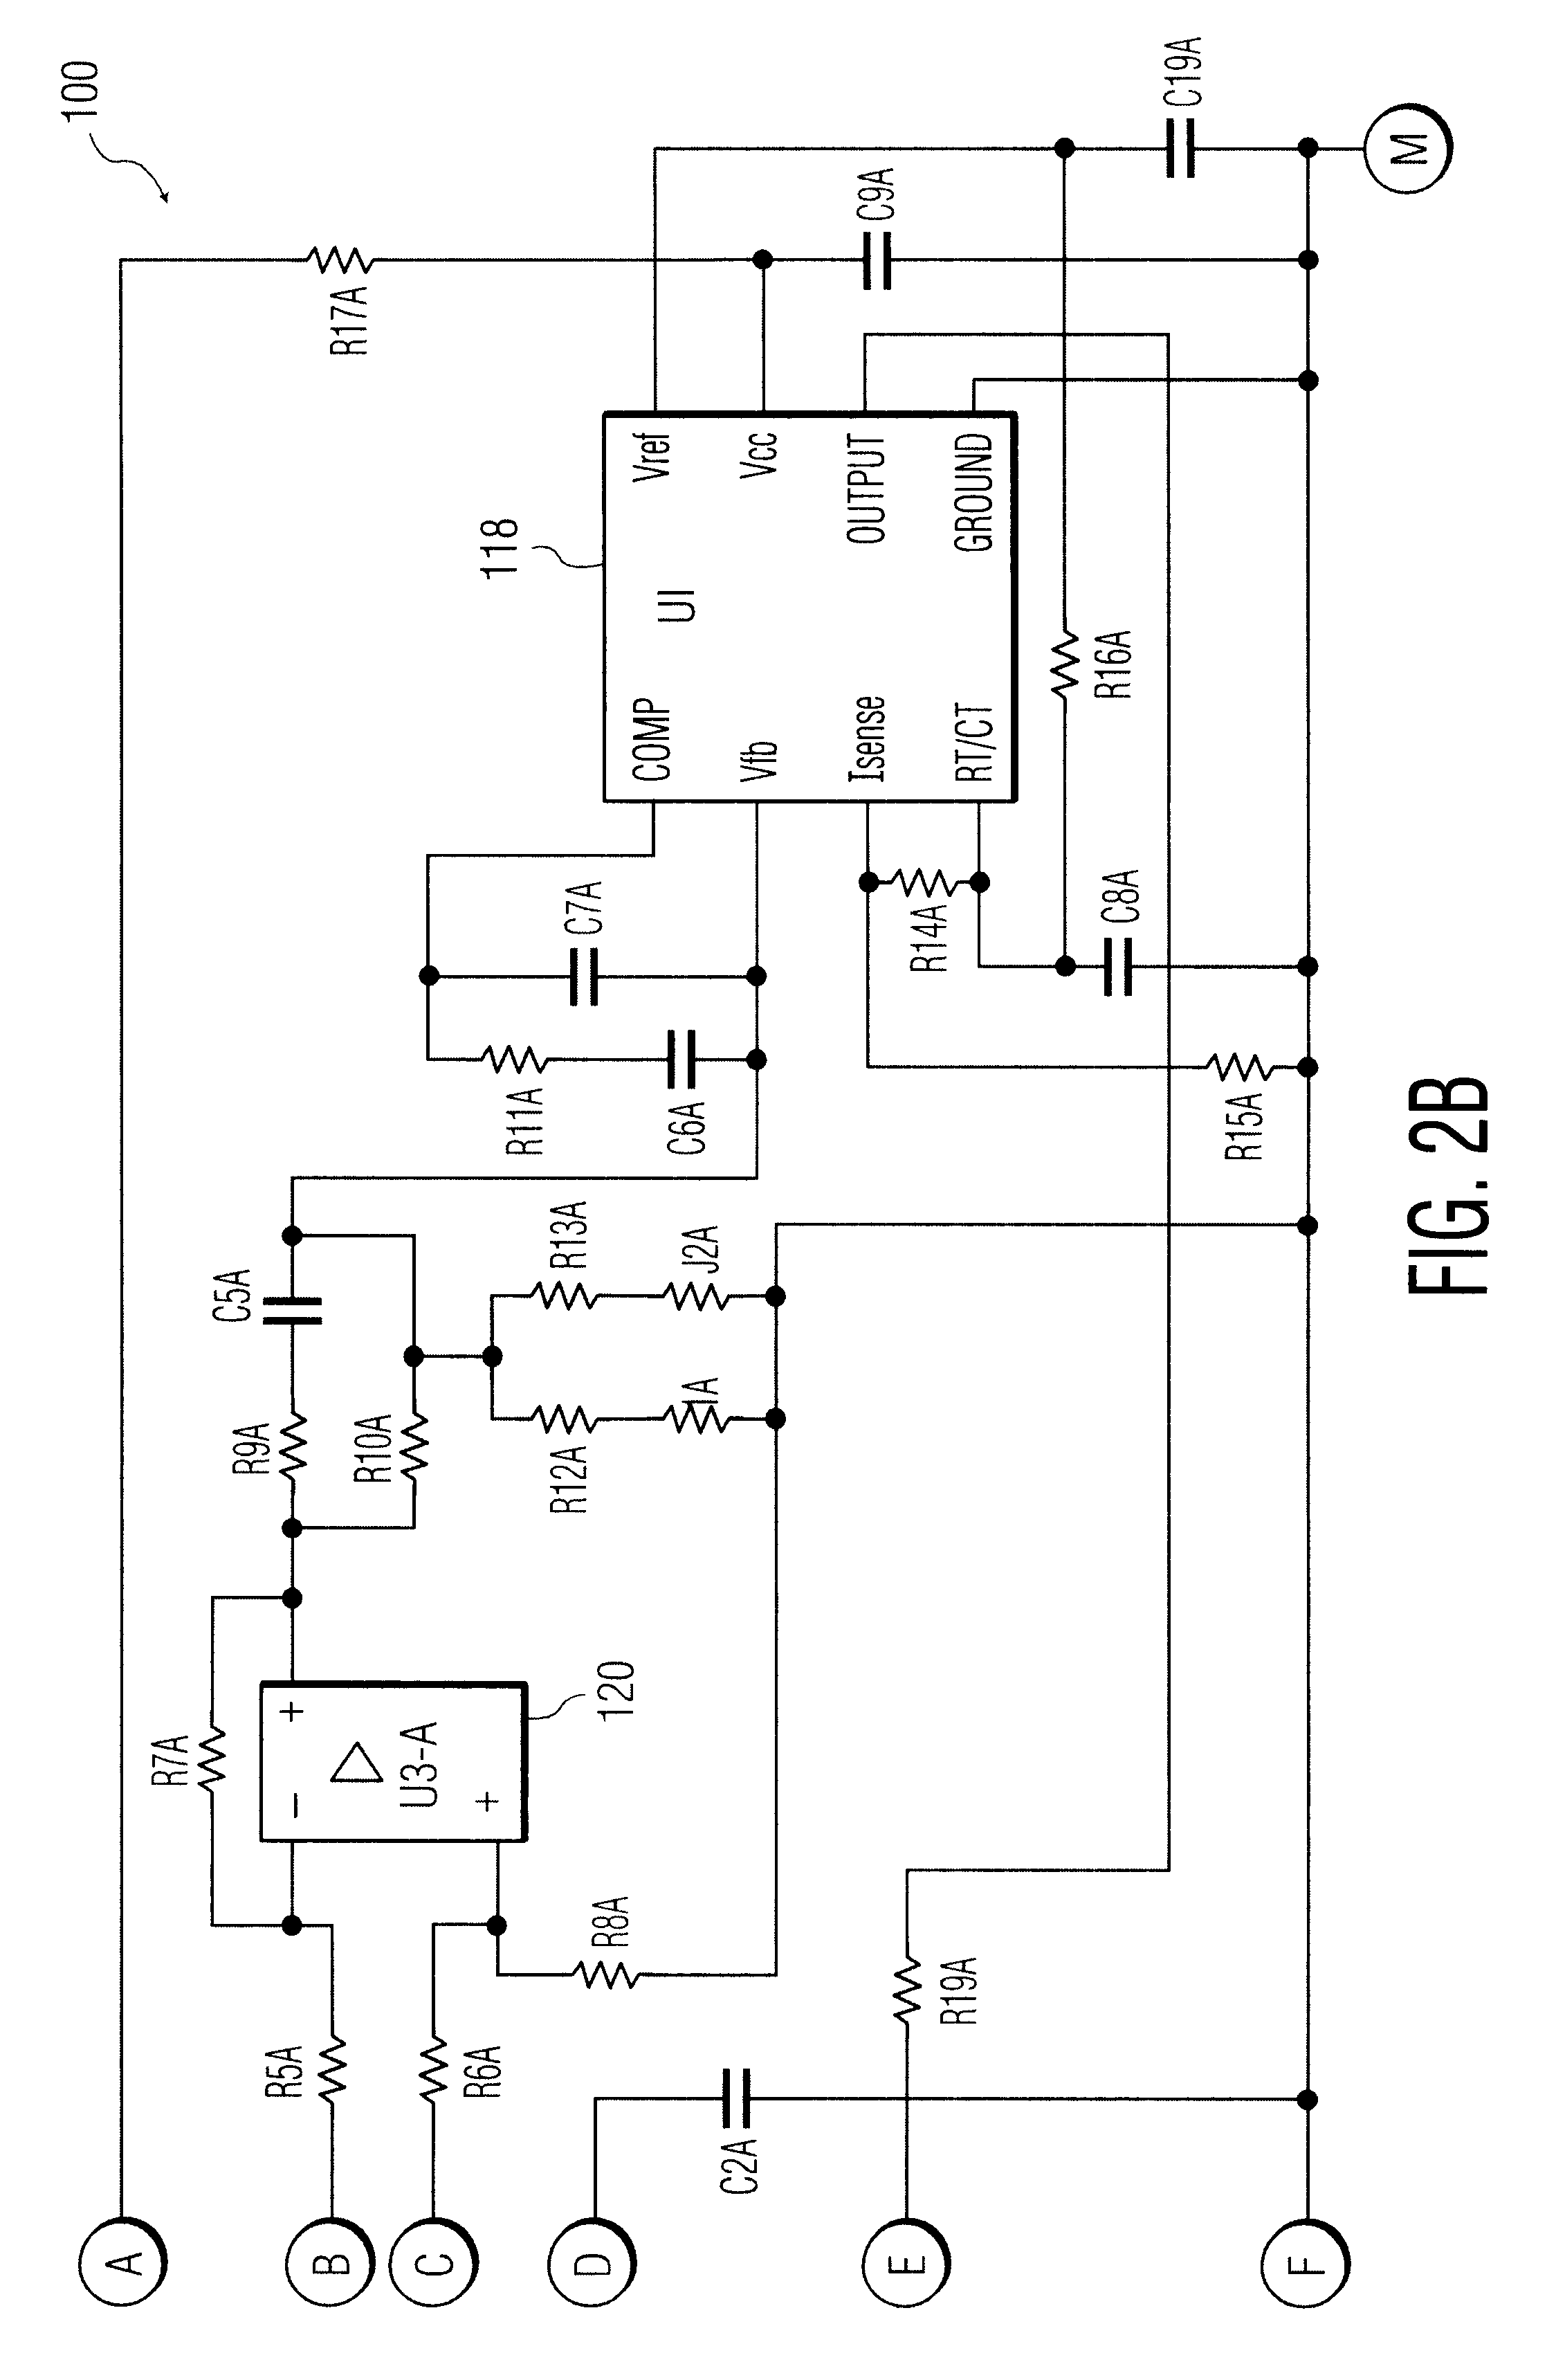 Output Pwm Led Driver Circuit Wiring Diagrams Dimmer Patent Us6586890 With 12v